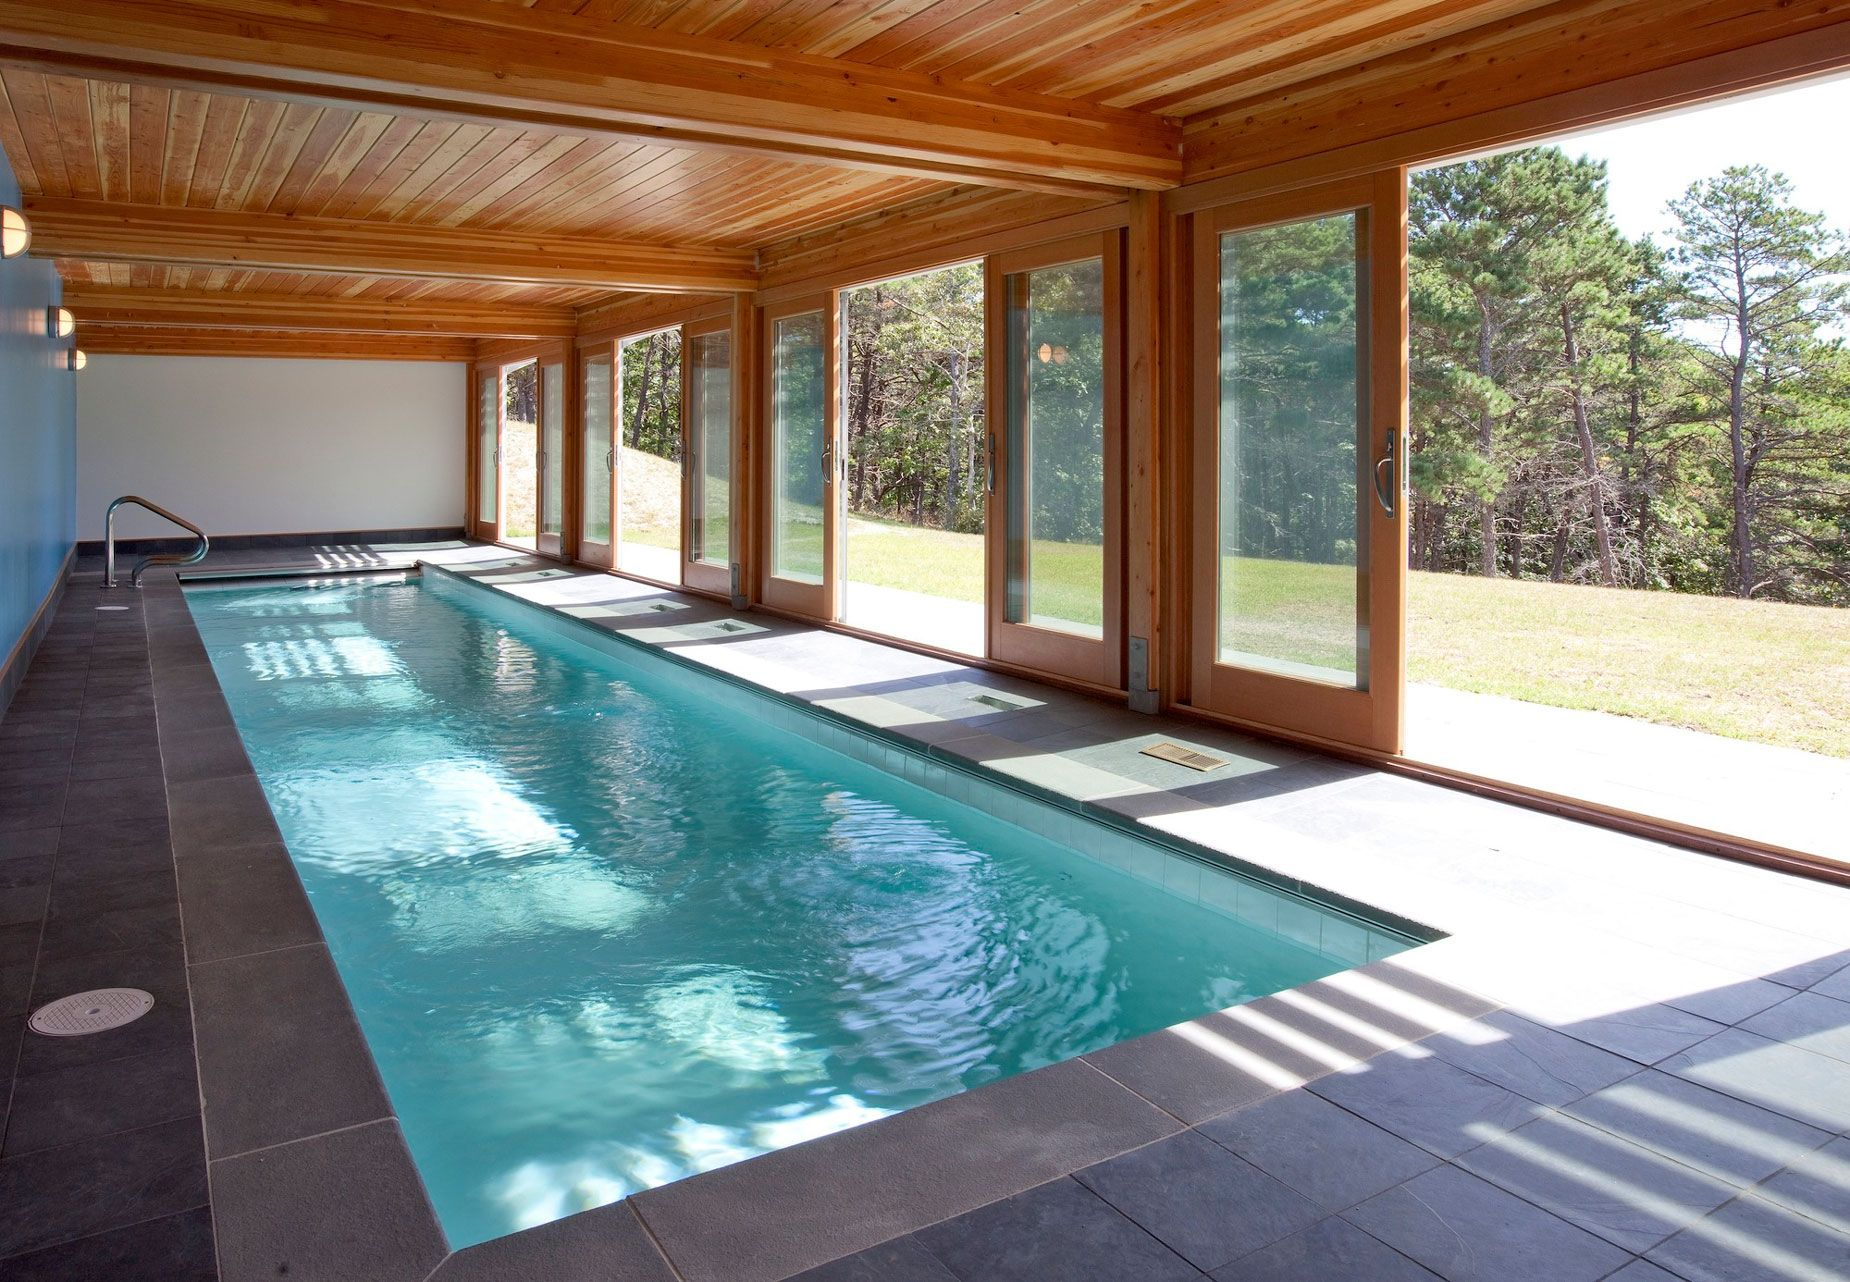 Cape Cod Modern House Addition By Hammer Architects 10 Homedsgn Indoor Swimming Pool Design Indoor Pool Design Small Indoor Pool